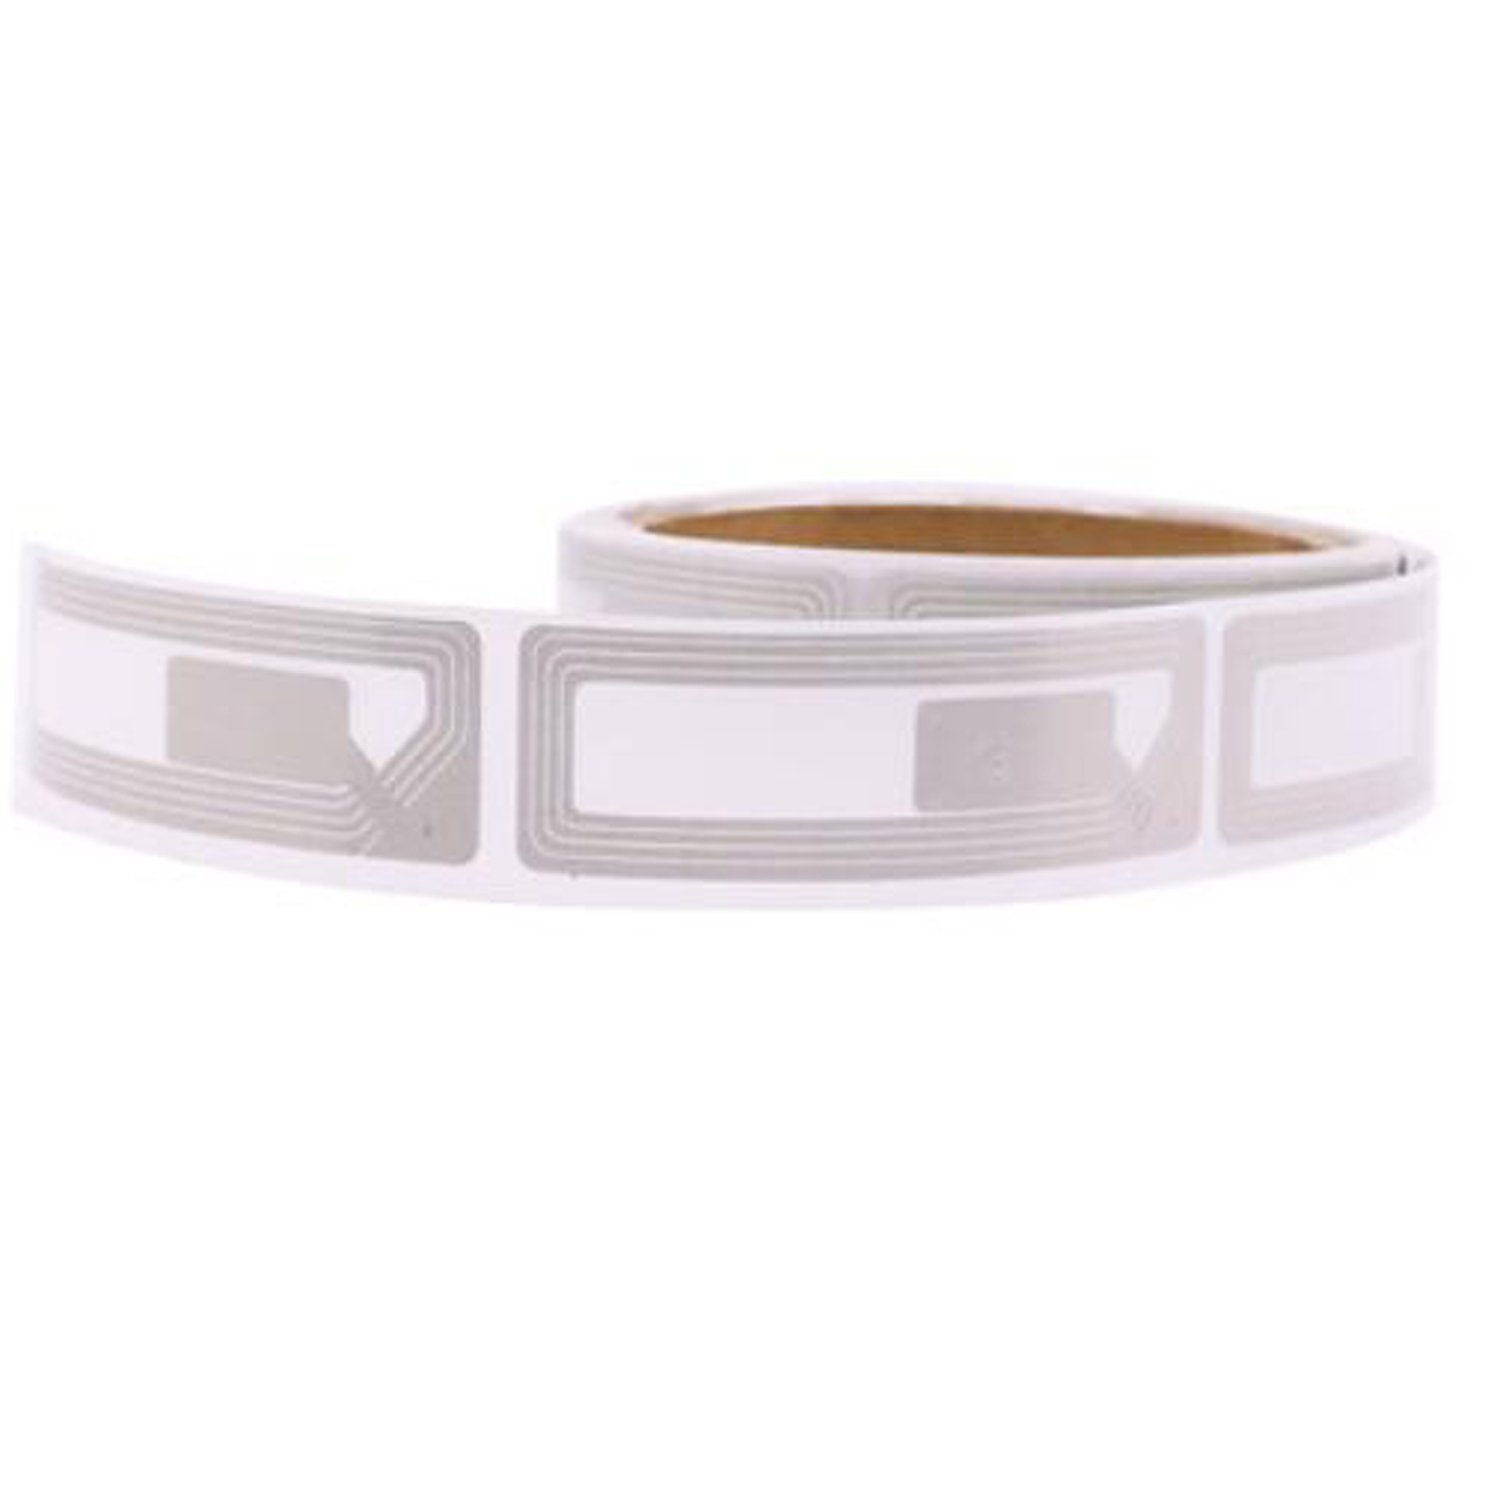 Checkpoint Compatible RF 8.2Mhz 19x65mm Silver Rectangular Security Label for Anti-theft